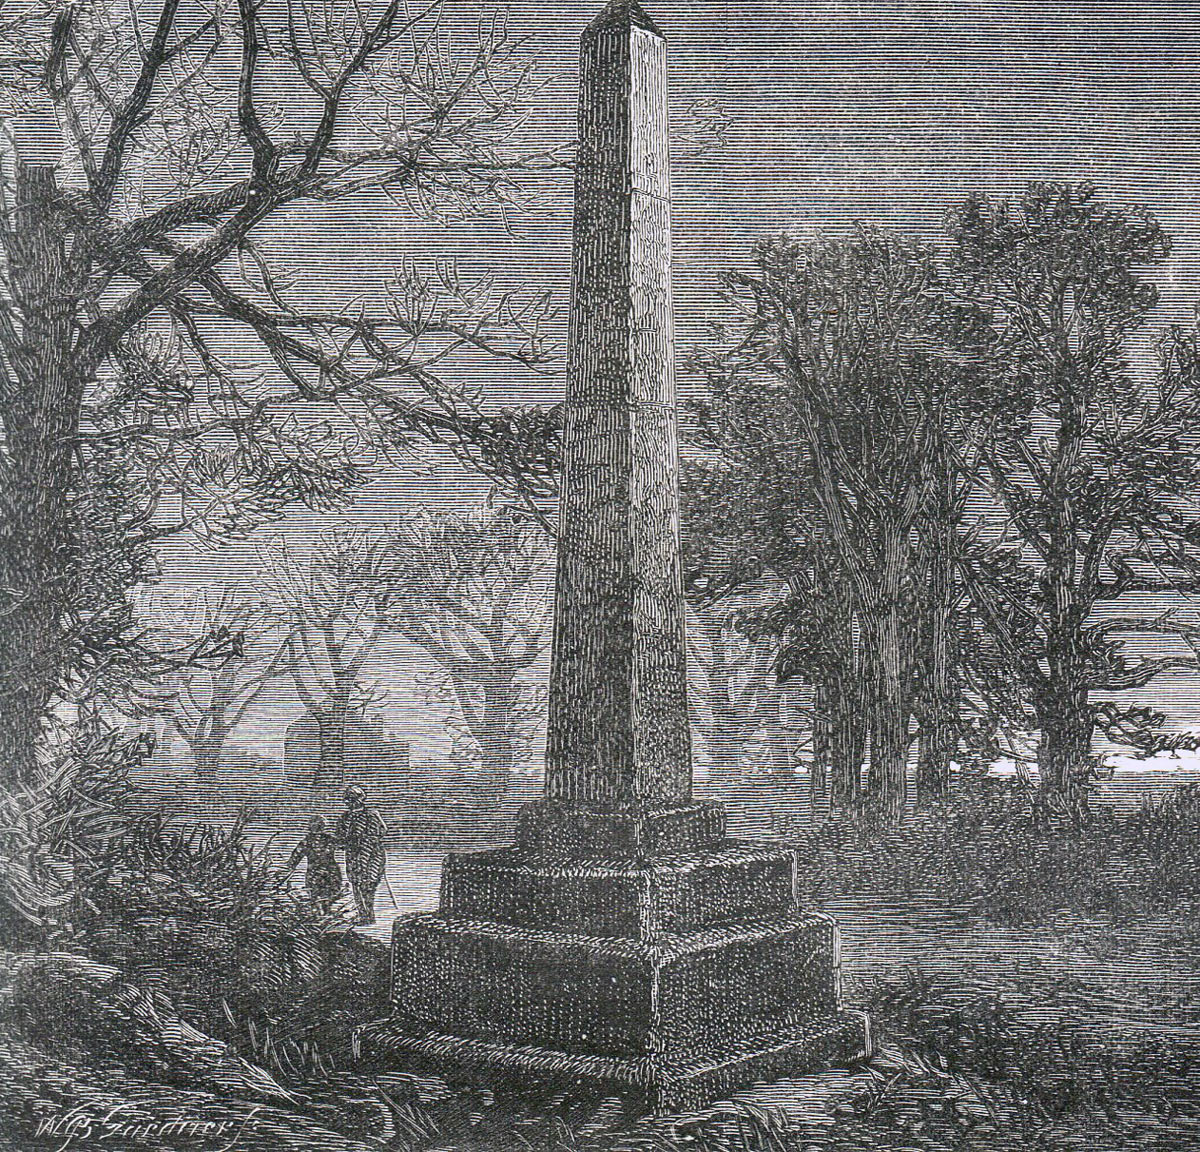 Obelisk commemorating the Battle of Barnet on 14th April 1471 in the Wars of the Roses